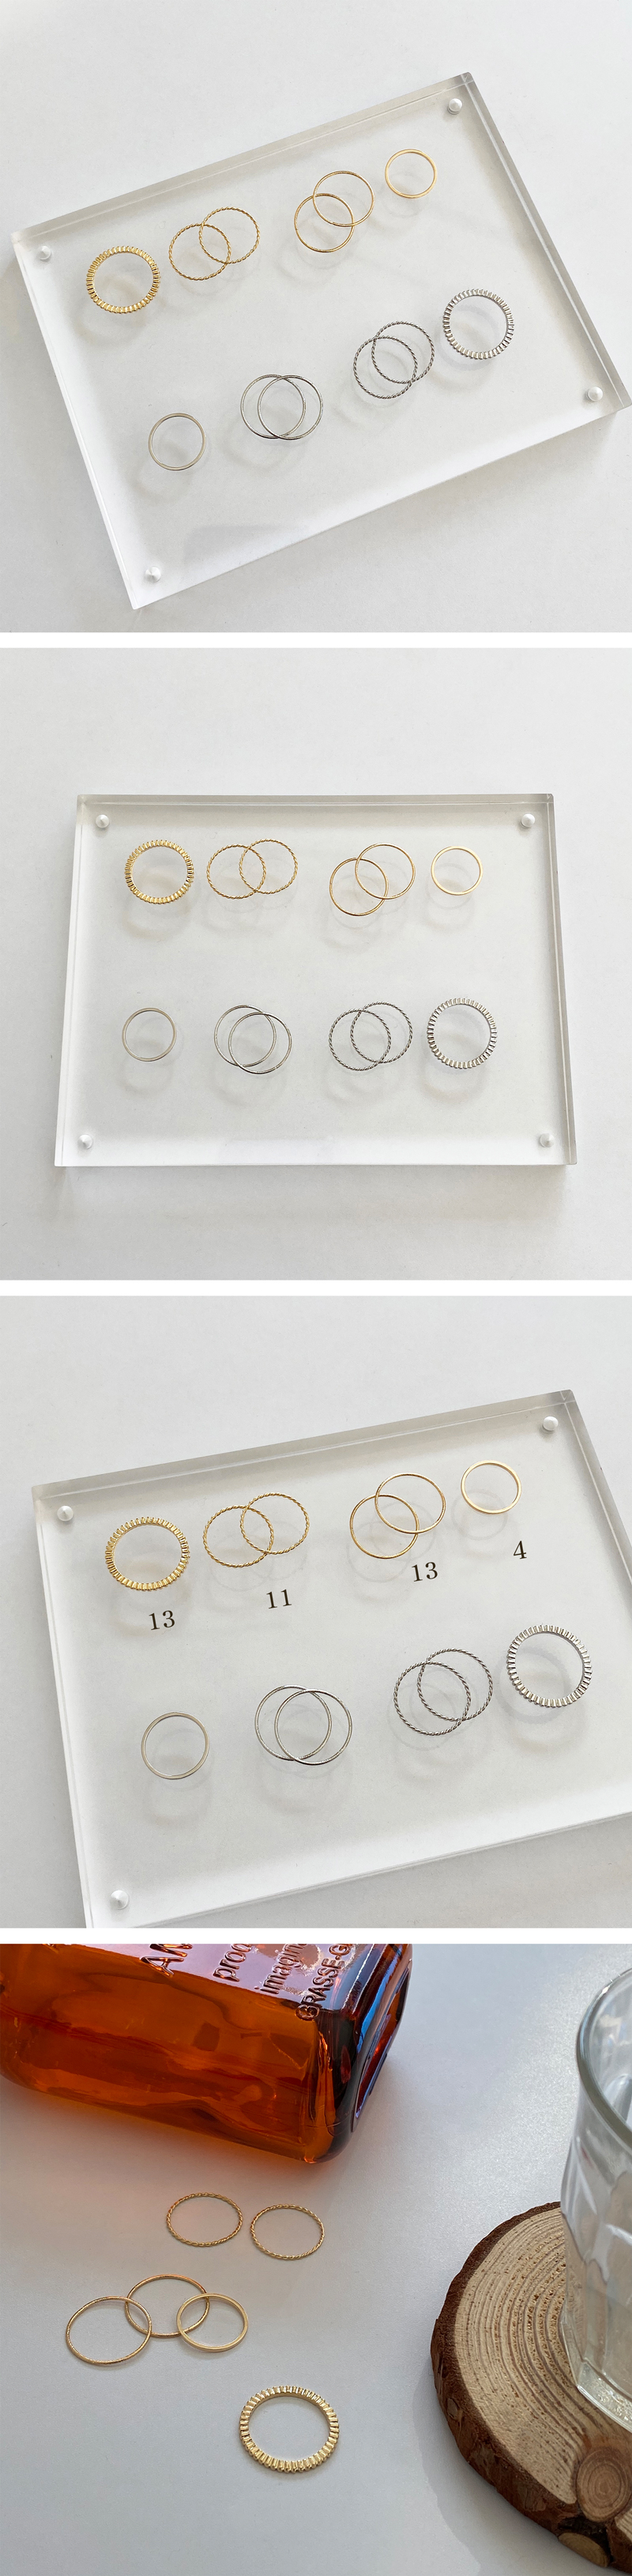 varn ring set